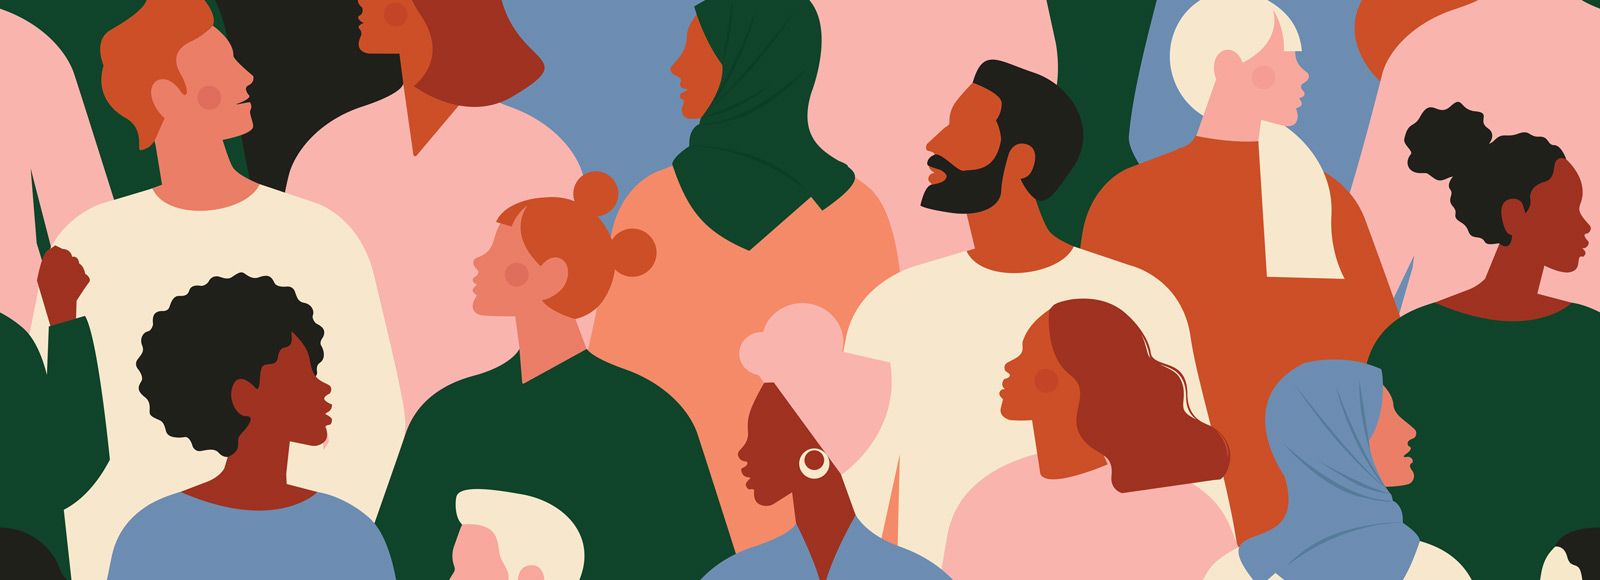 Diverse crowd of people illustration